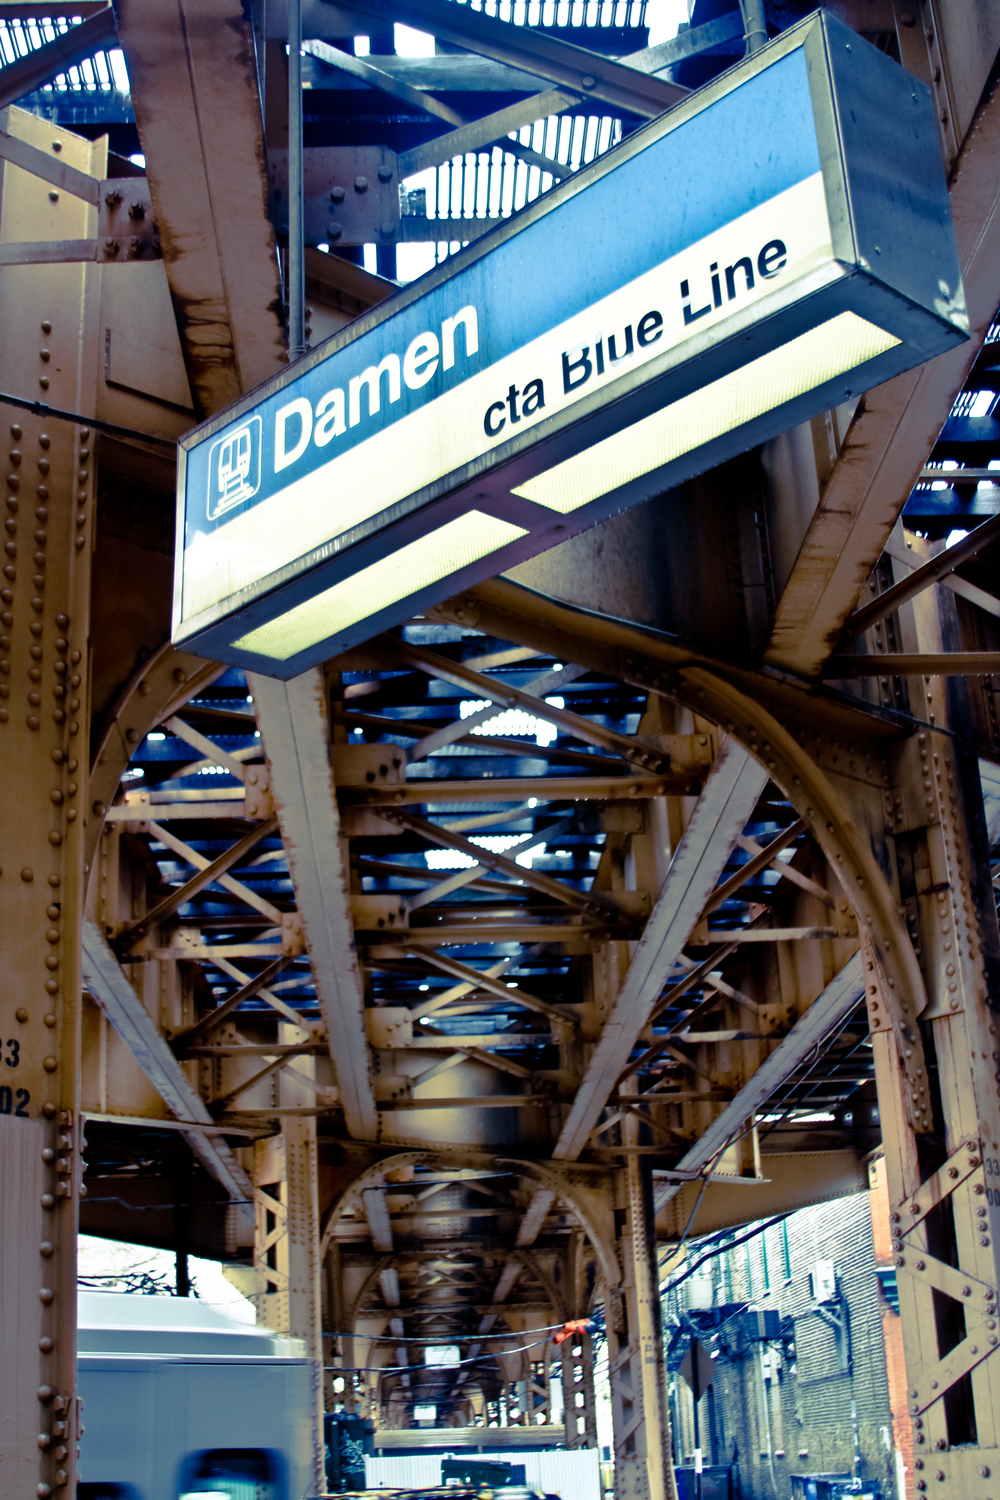 Damen CTA Blue Line